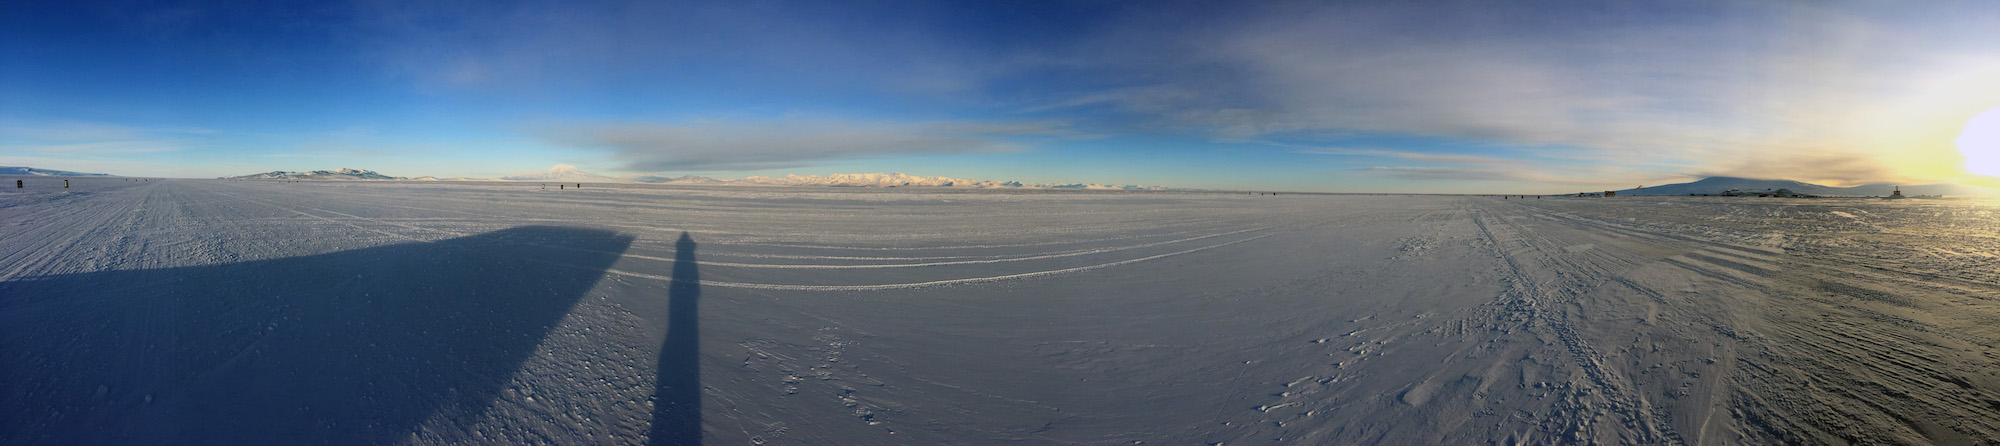 Early morning sun illuminating Black Island, the Transantarctic Mountains, and Ross Island (from left to right).